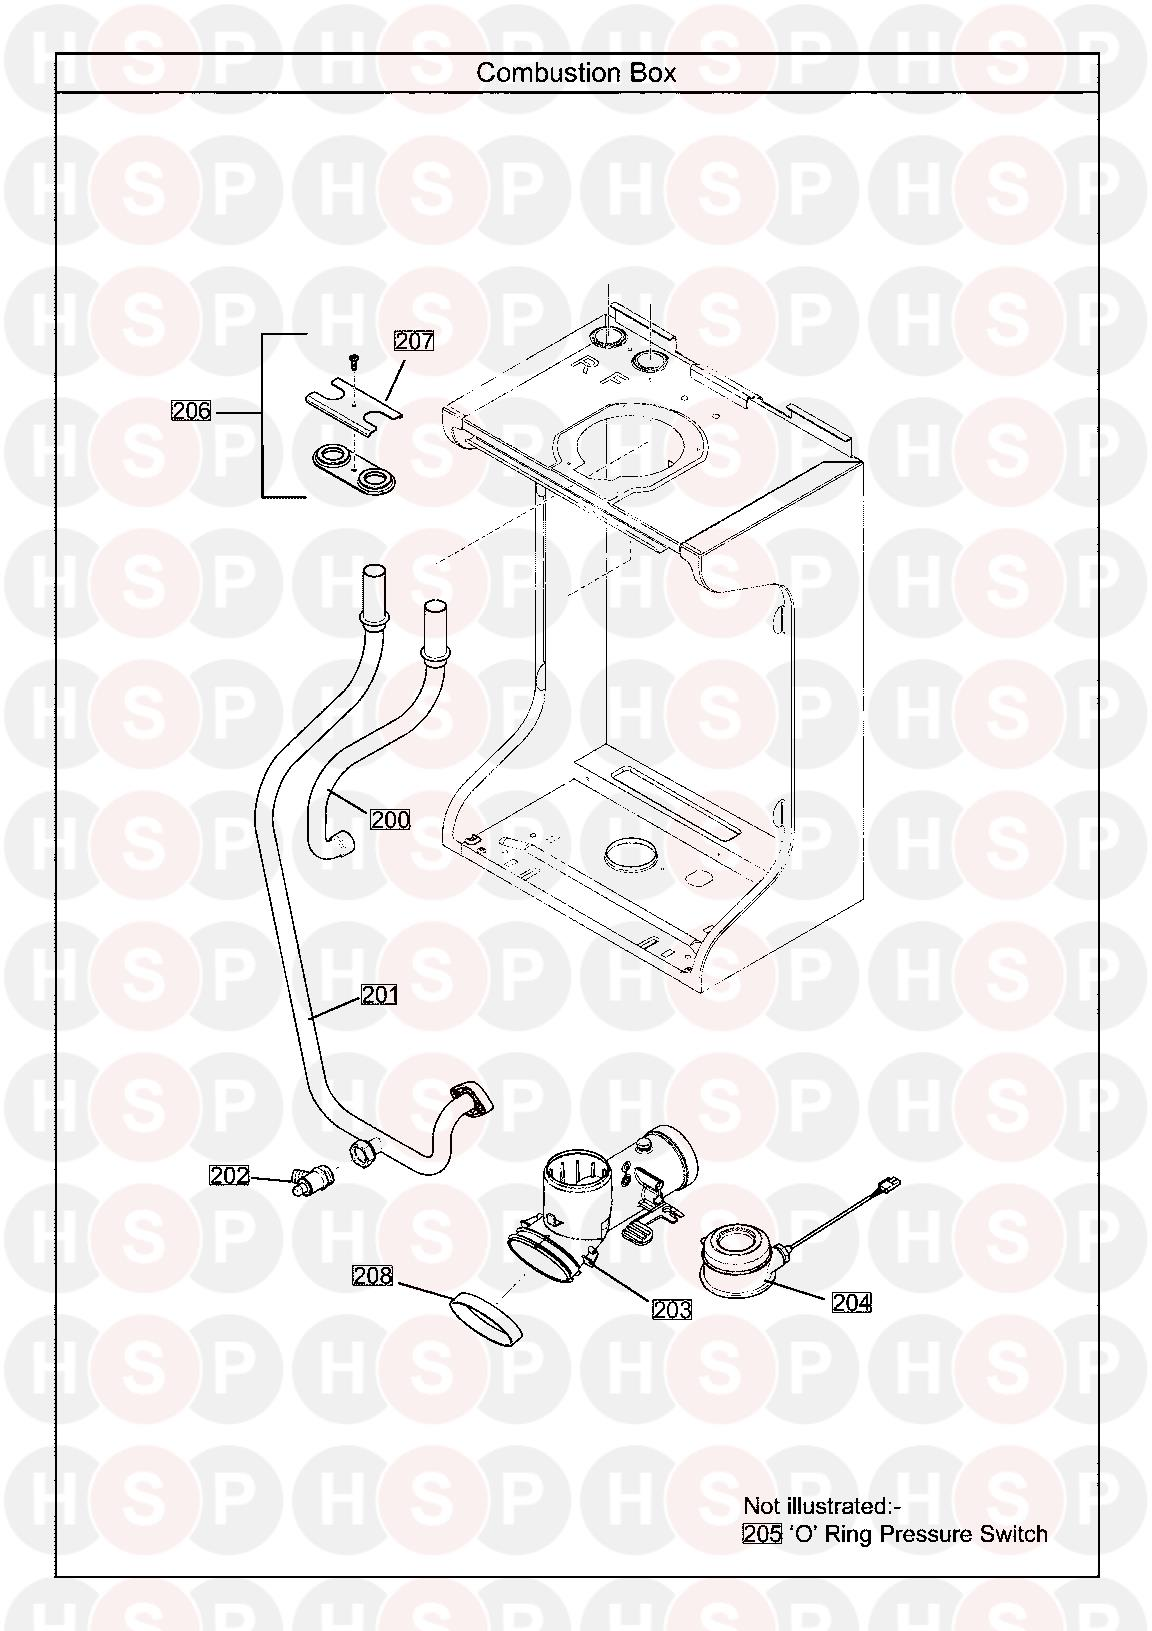 baxi 12 heat only erp  combustion box  diagram